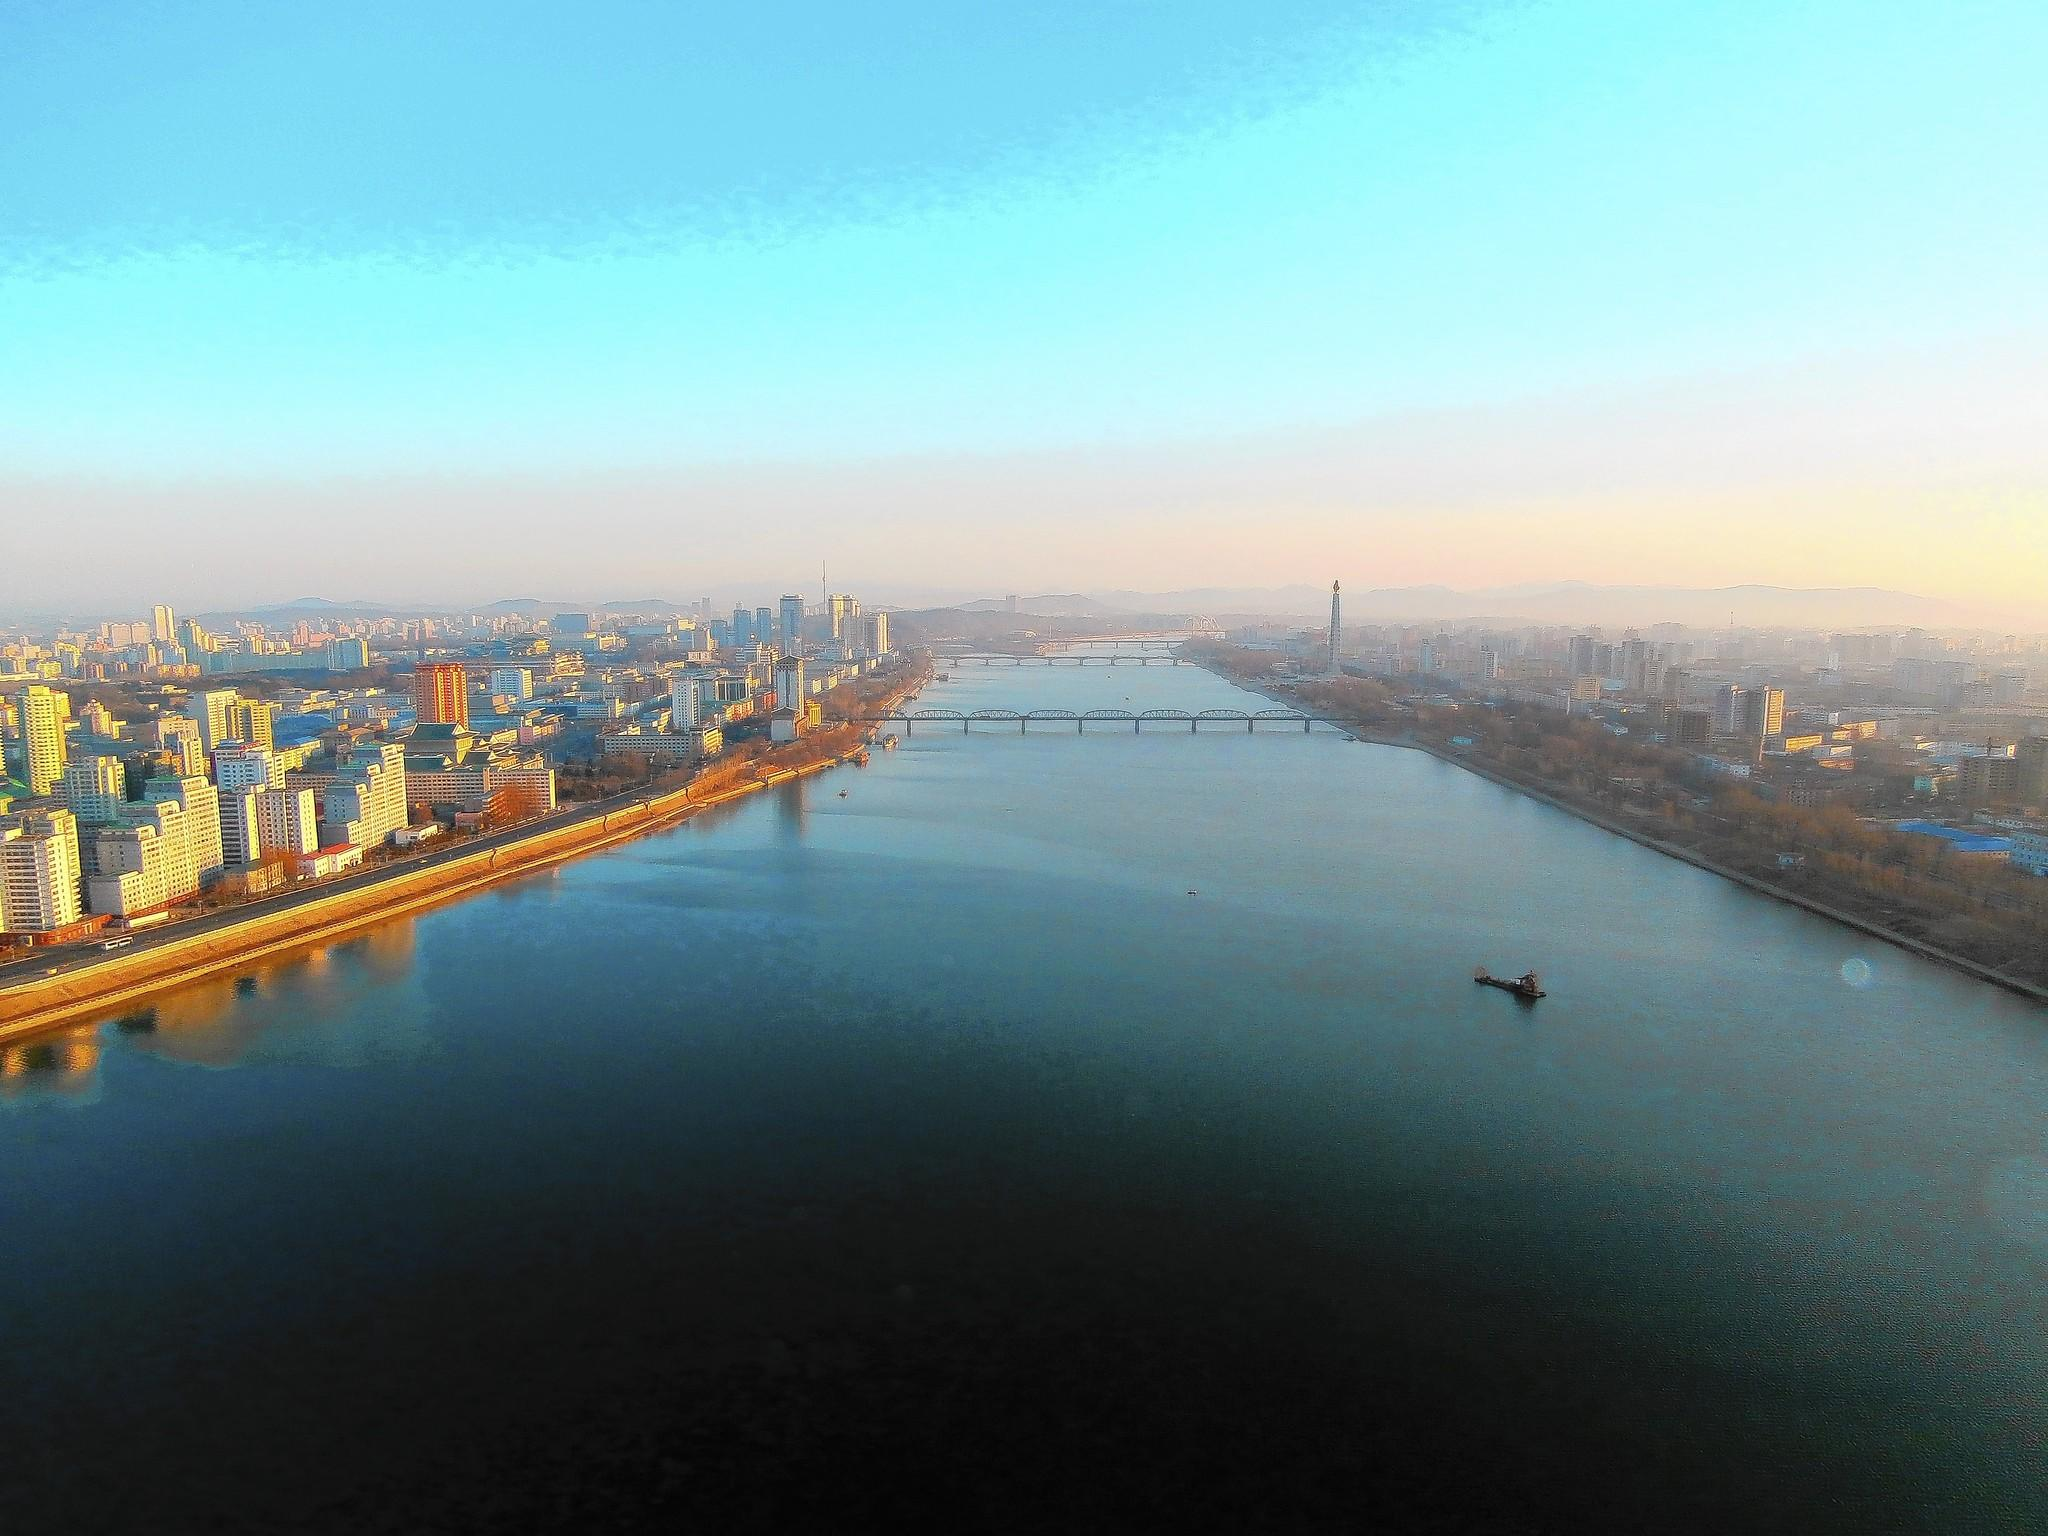 Pyongyang in the morning, on the Taedong River.